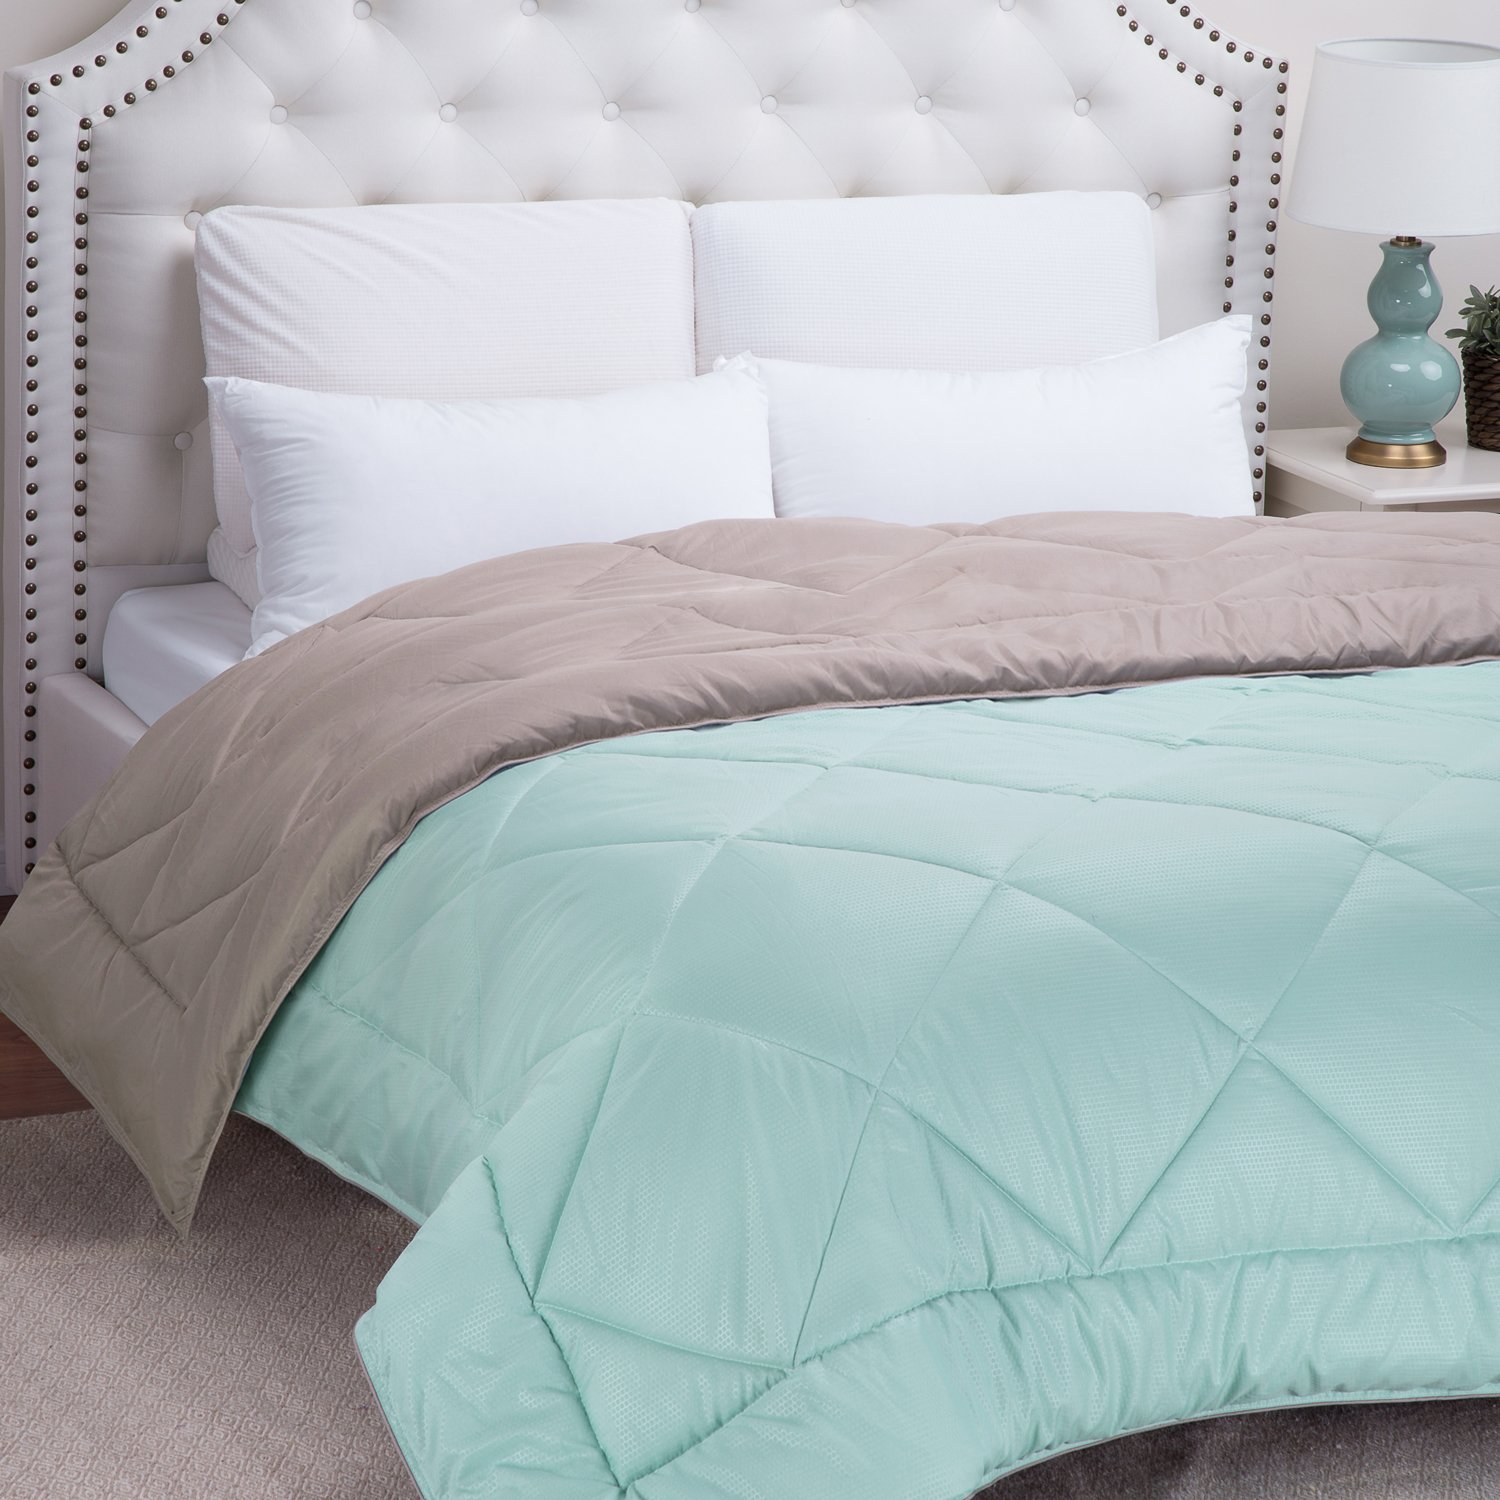 Alternative Comforter with Corner Ties, Full/Queen - Mint/Tan